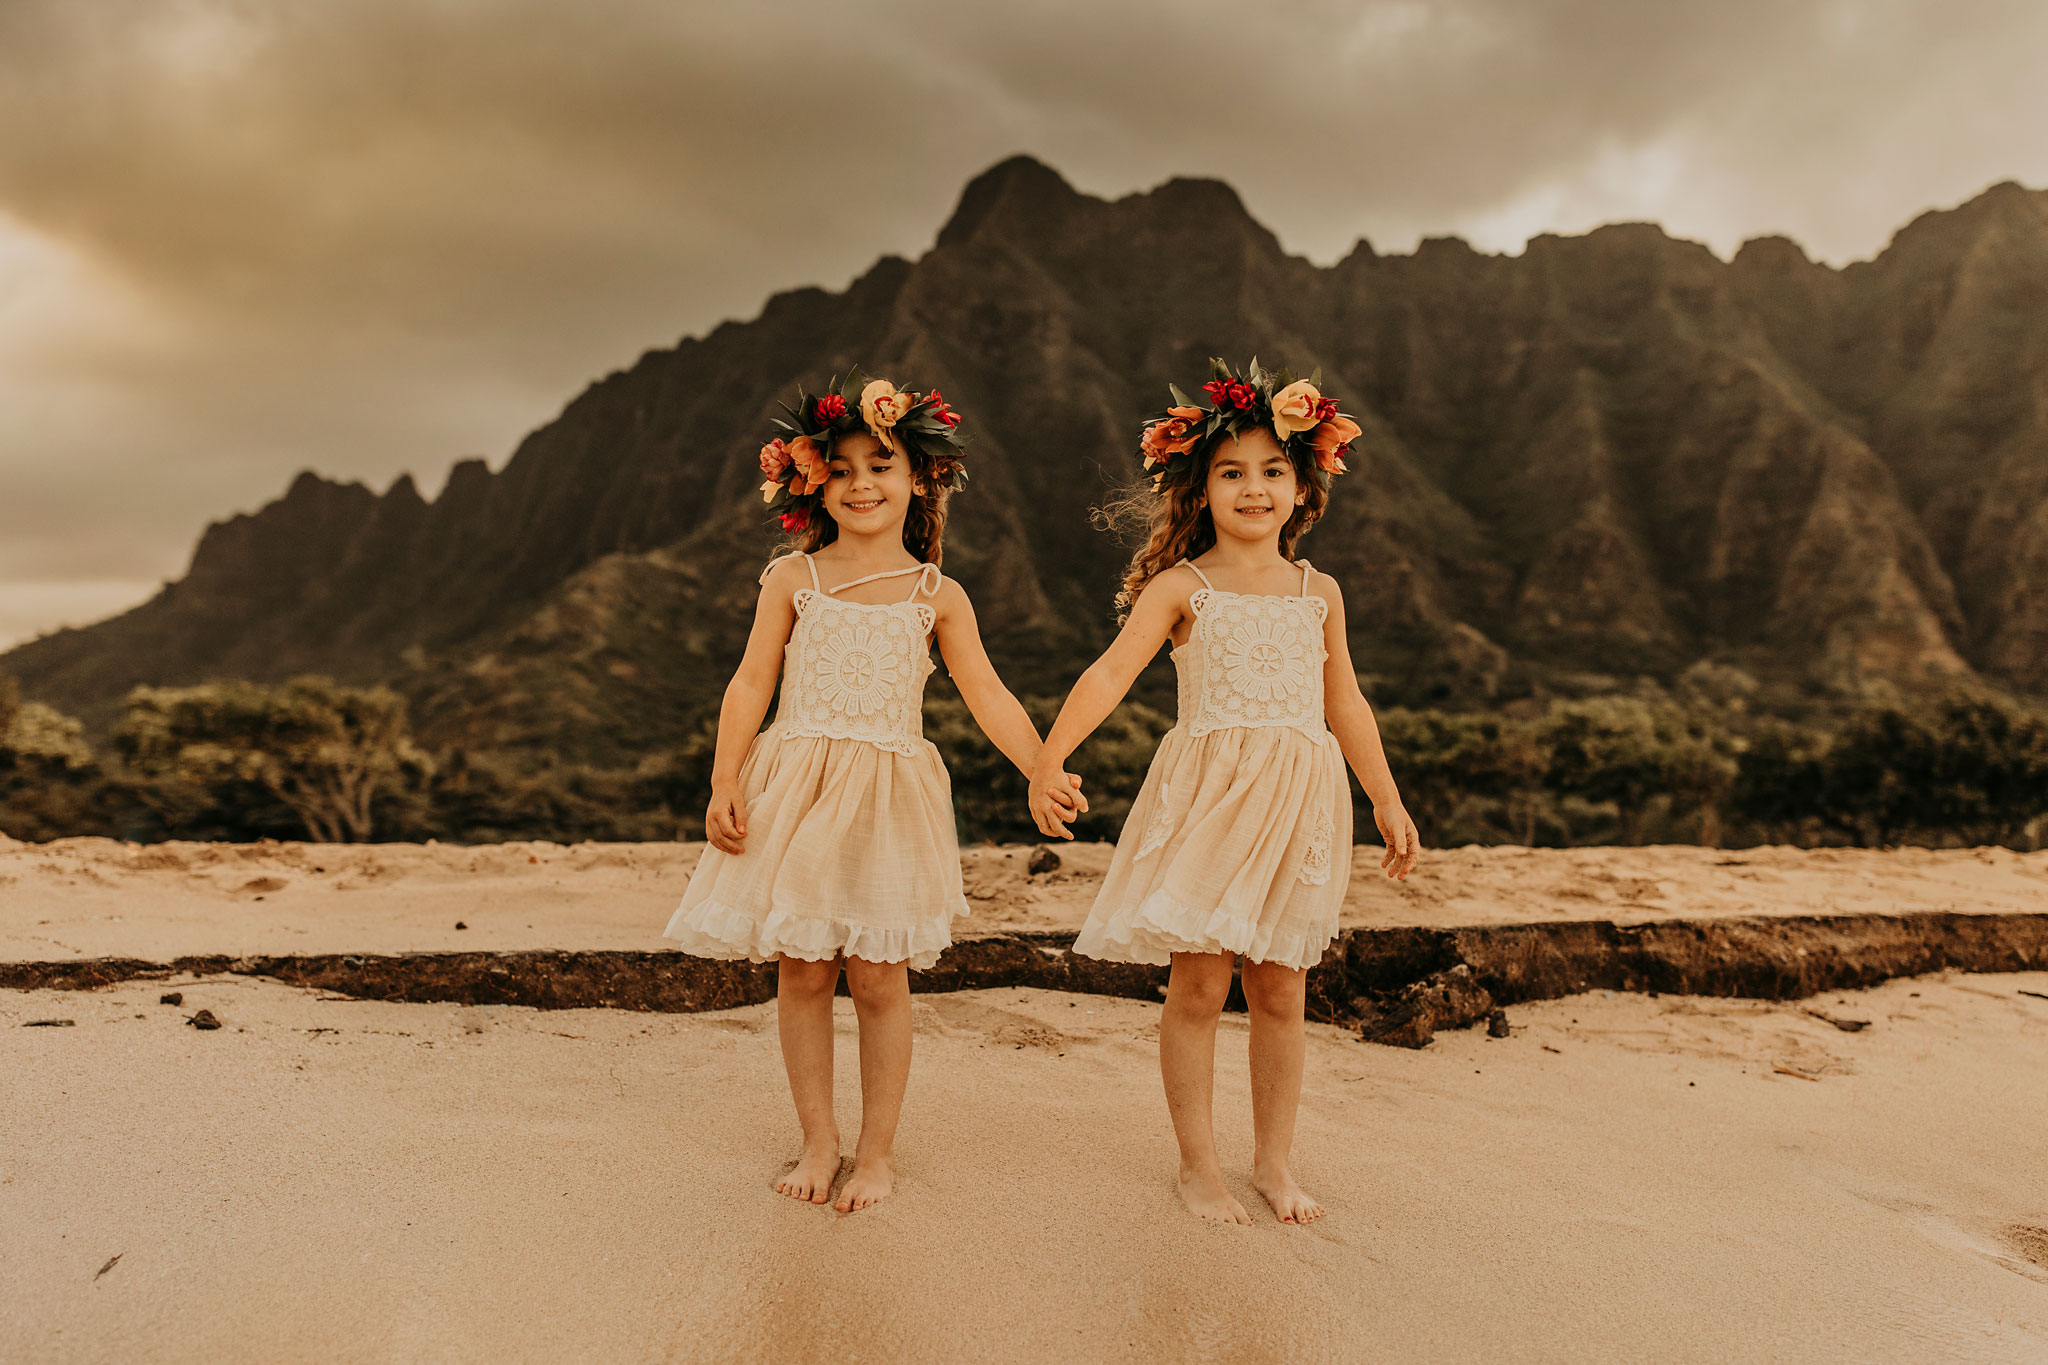 oahu-hawaoo-family-photos-photographer-photography-10.jpg